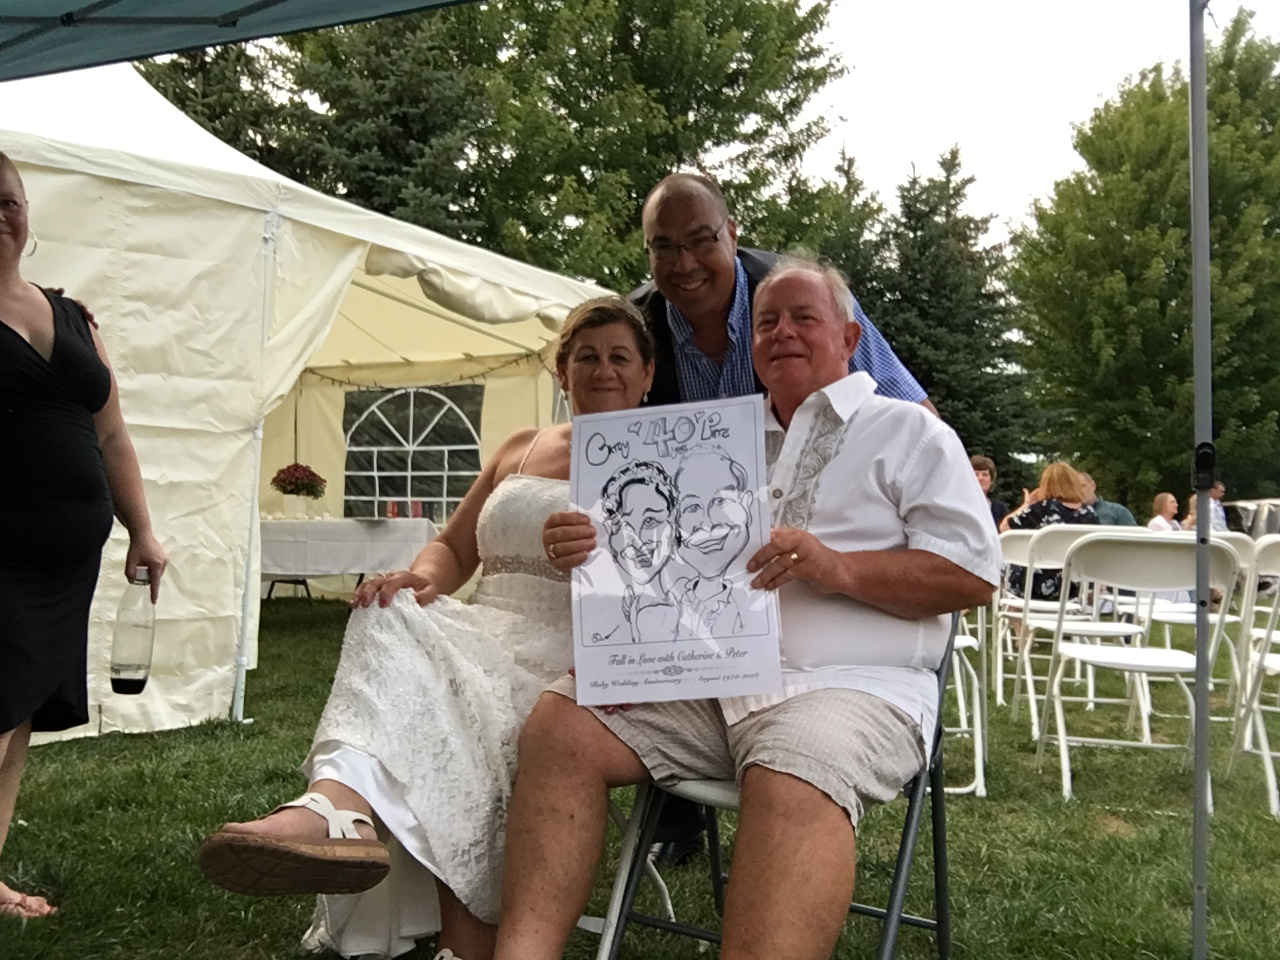 Pete and Cathy's 40th Anniversary Party-August 18, 2018